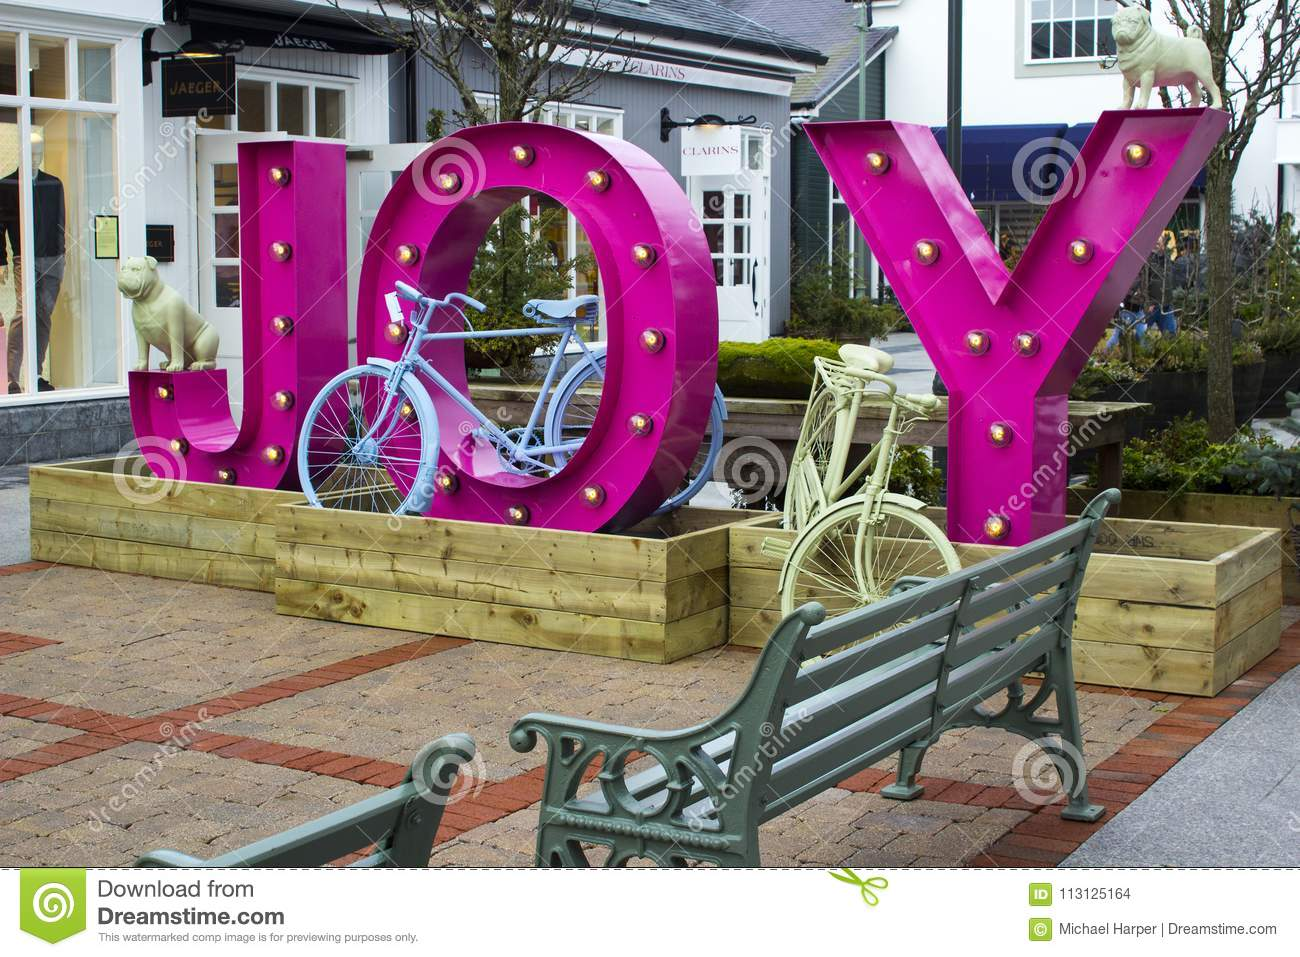 ff63a30edf38 16 March 2018 Retro style bicycles used as decorative items of interest at  the luxury Kildare Village retail outlet in County Kildare Ireland